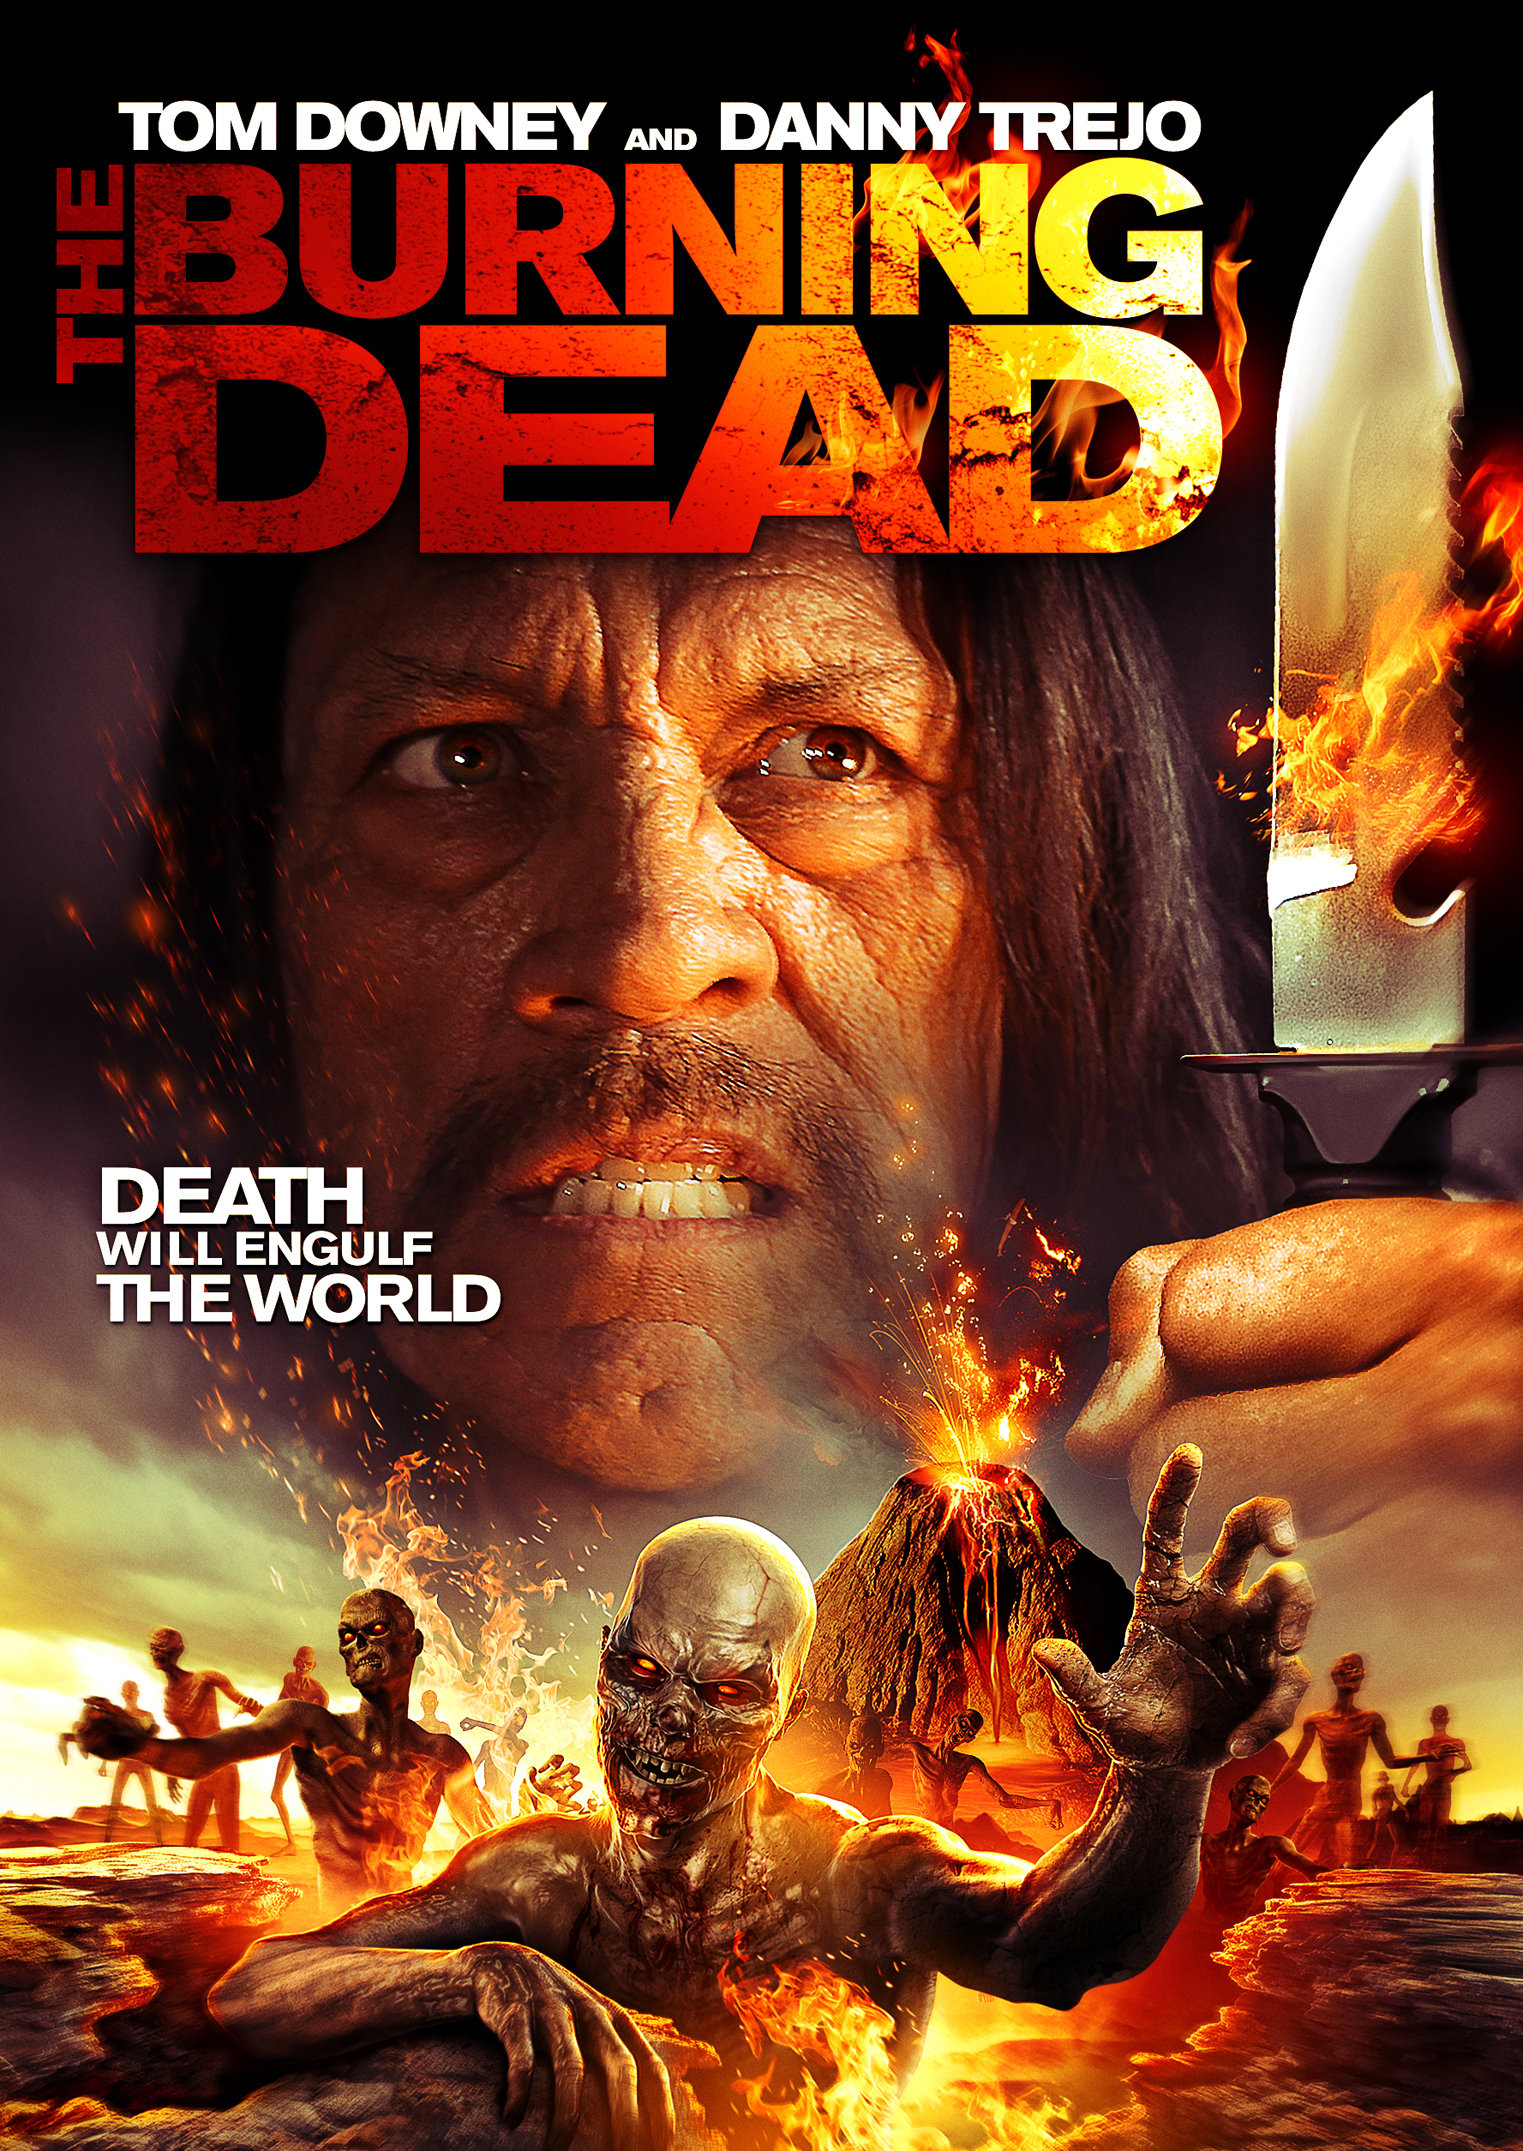 The Burning Dead 2015 Hindi Dual Audio 480p BluRay ESubs 300MB x264 AAC